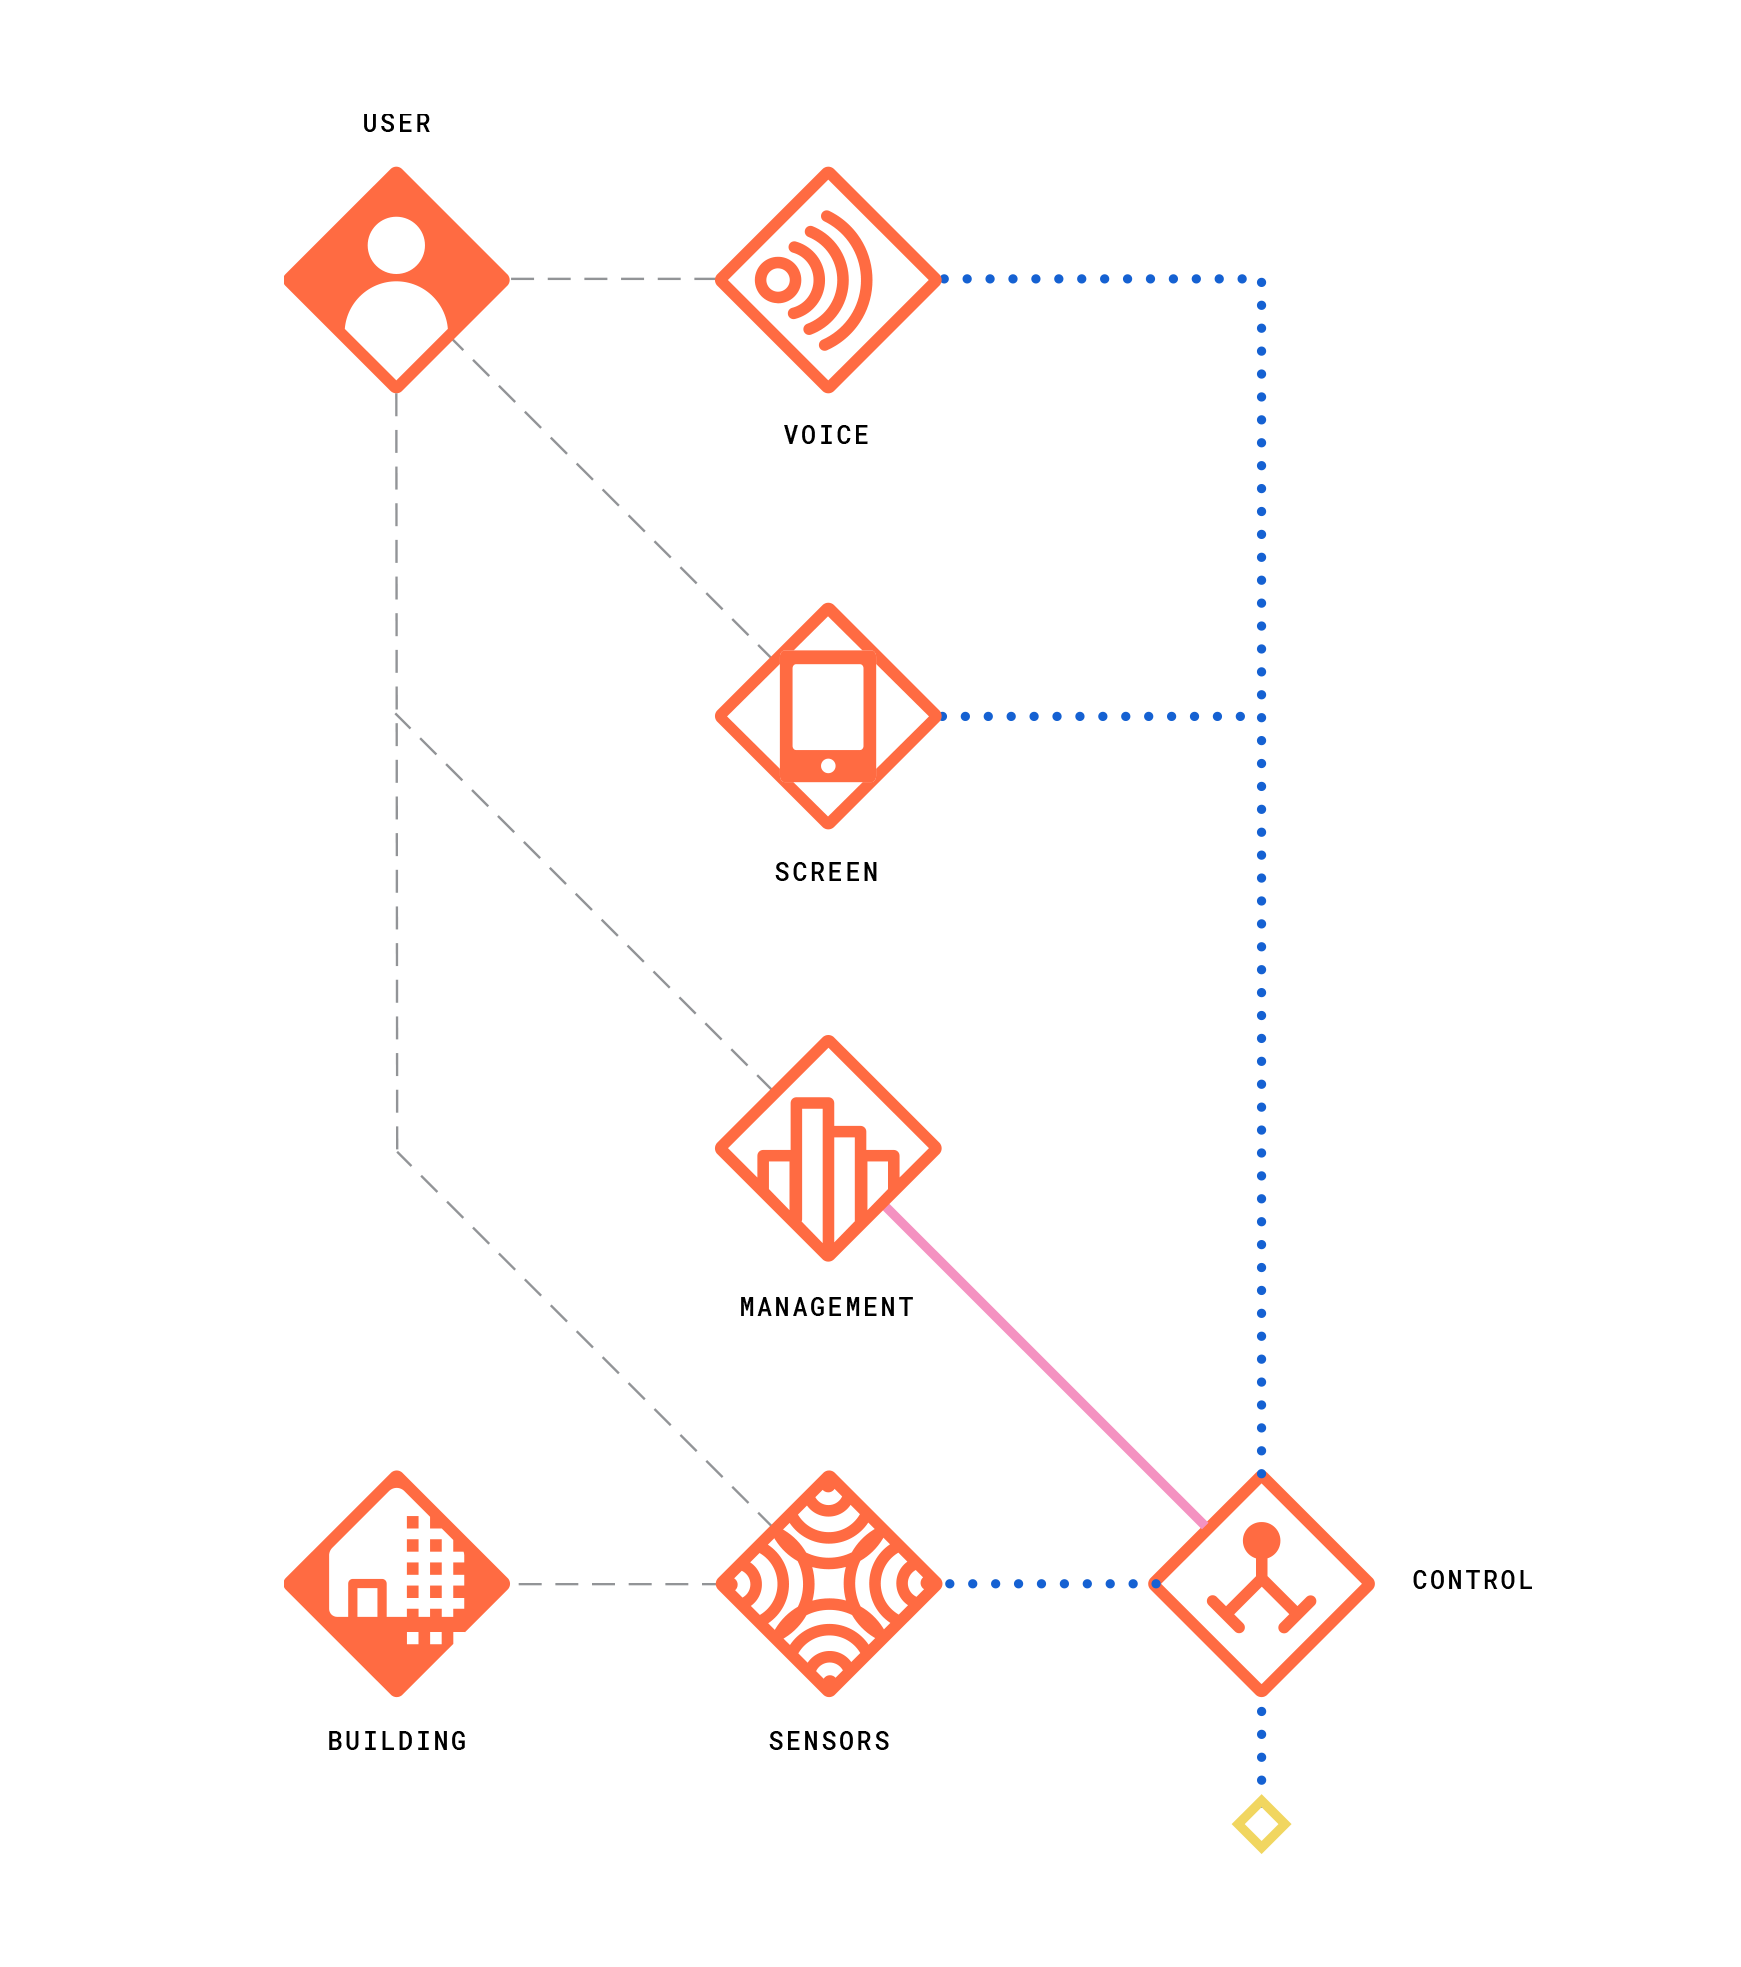 HSS_NEW_Control-Blueprint_v5.png